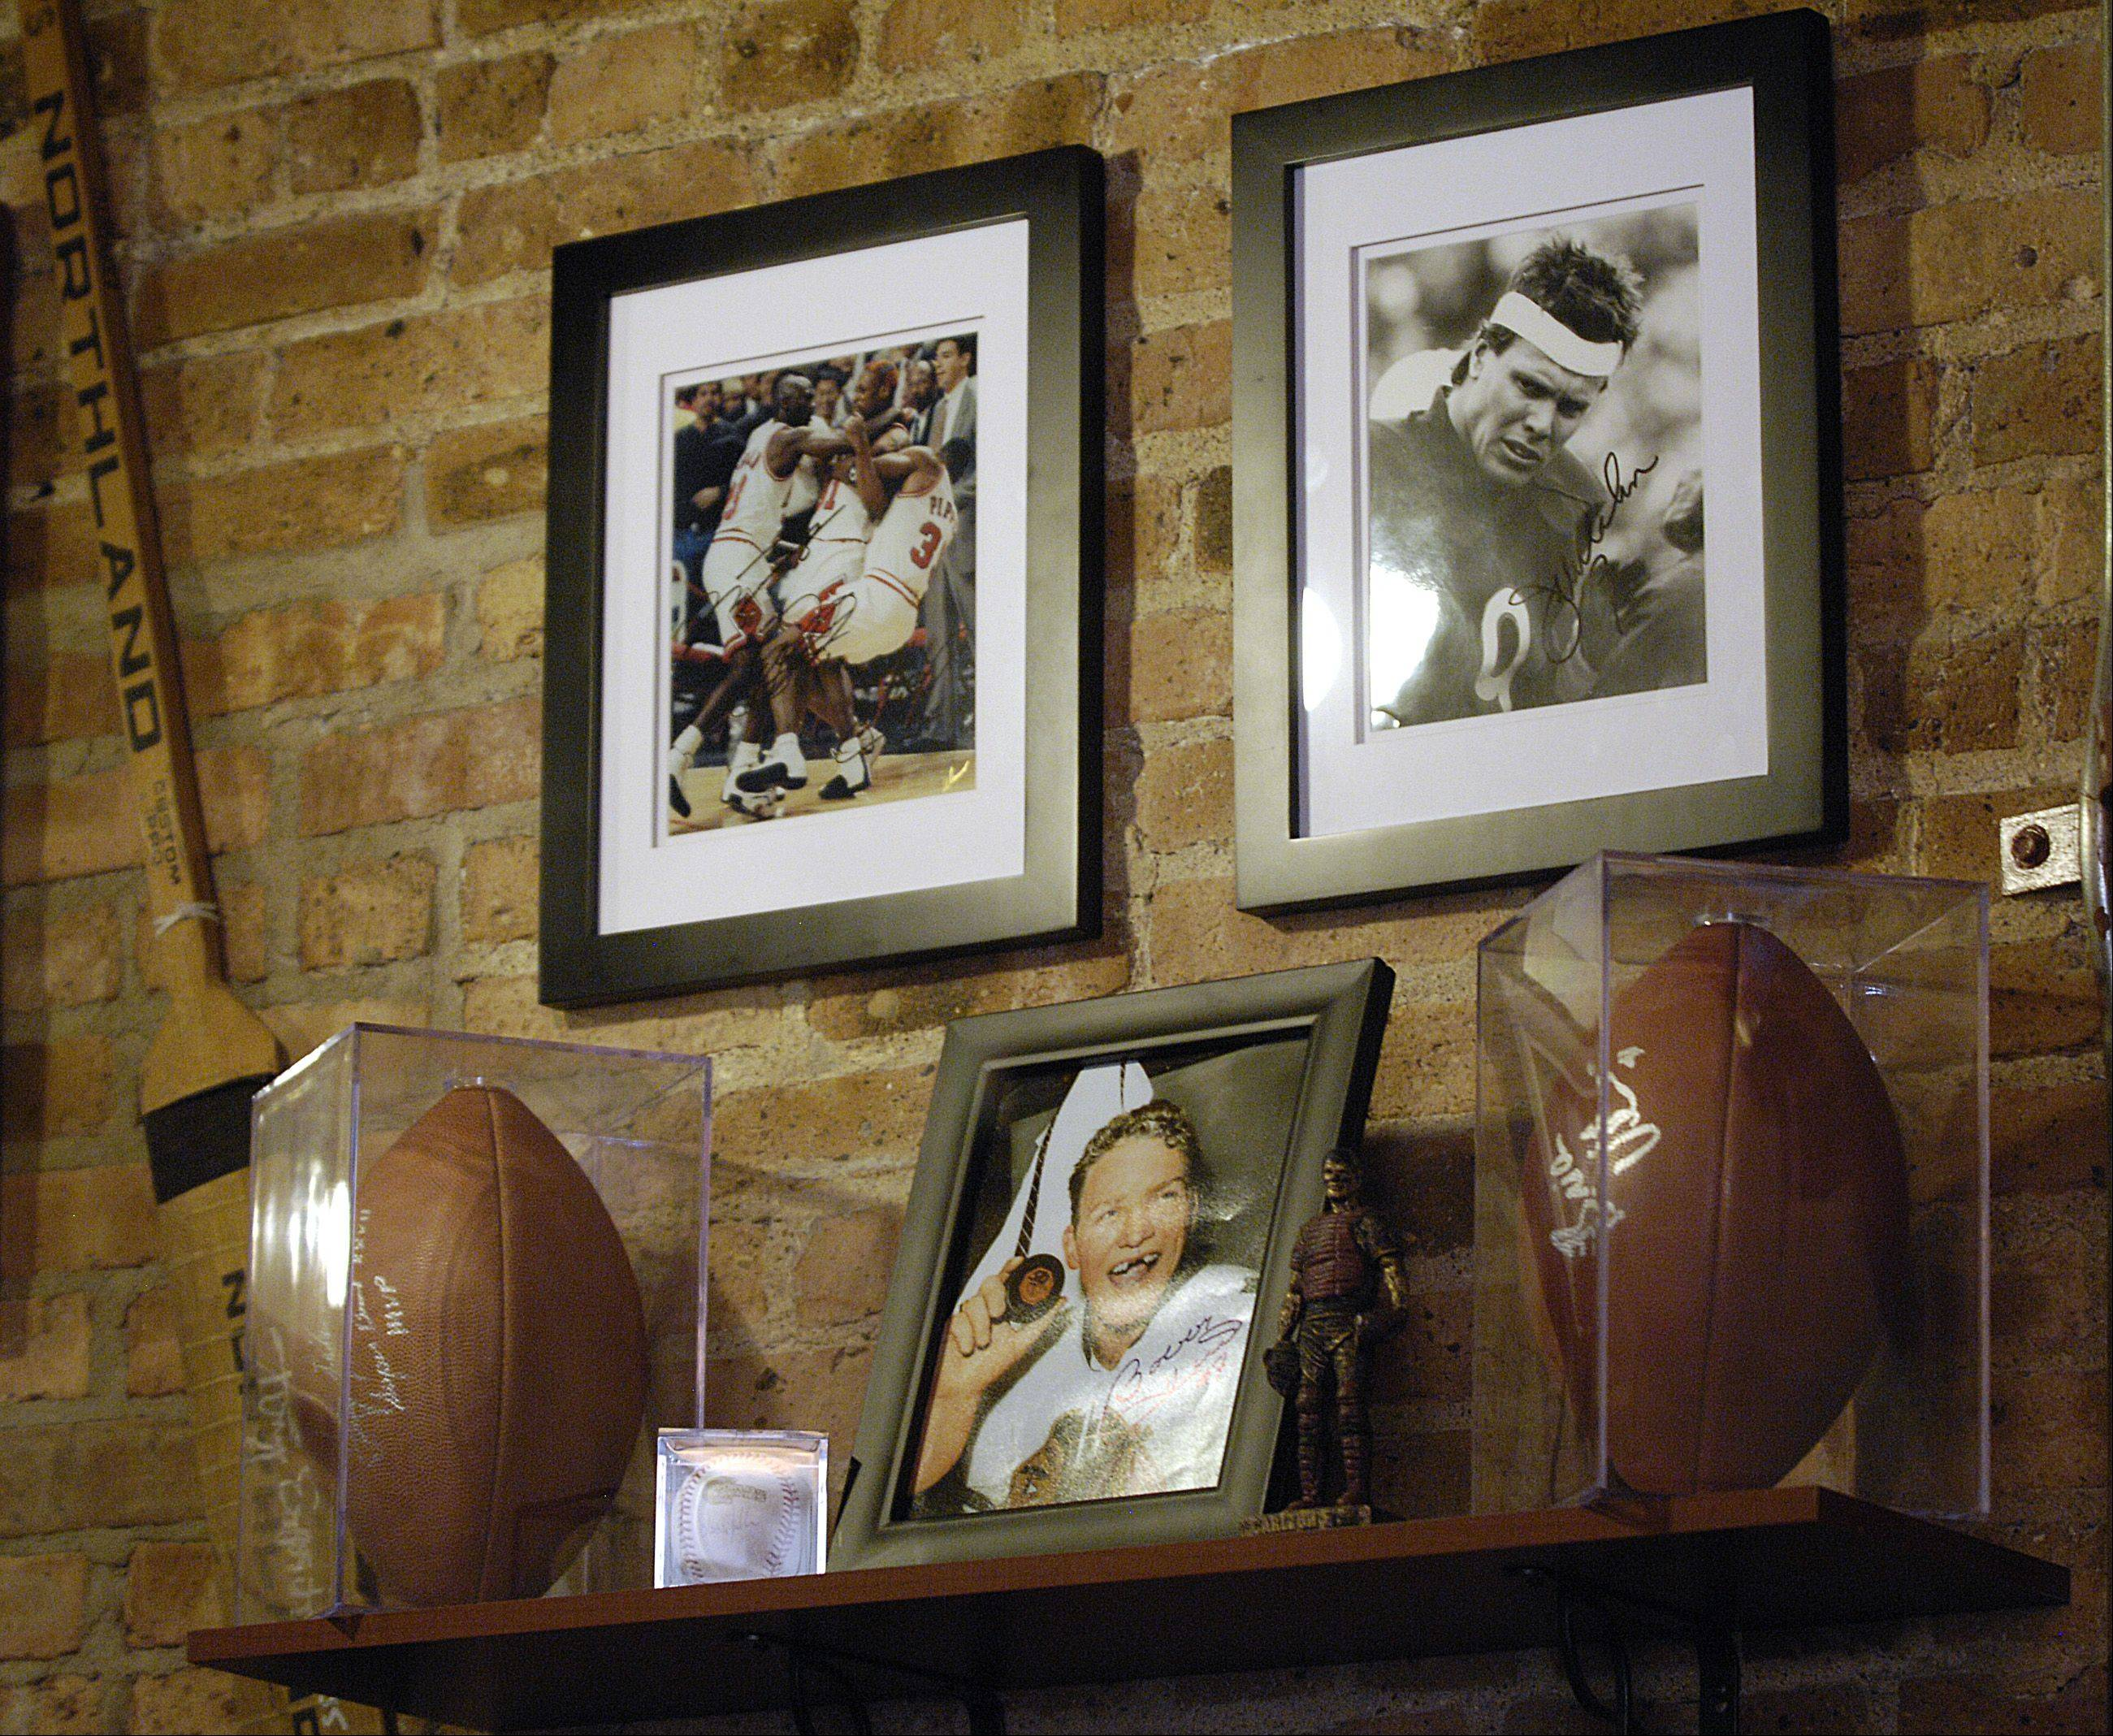 Sports items and photos drive home the theme at North Side Sports Bar & Grill in Glen Ellyn.